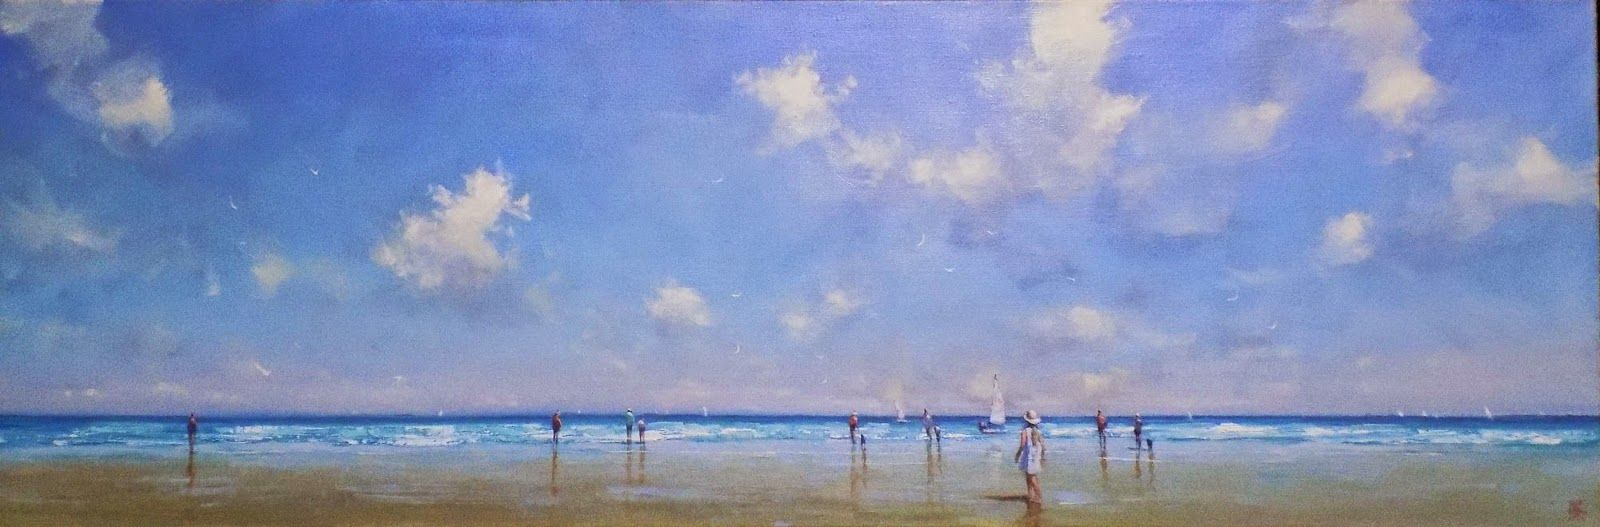 Long Beach I Ve Called The Painting This Simply Because It Is A Mainly Skyscape With Figure